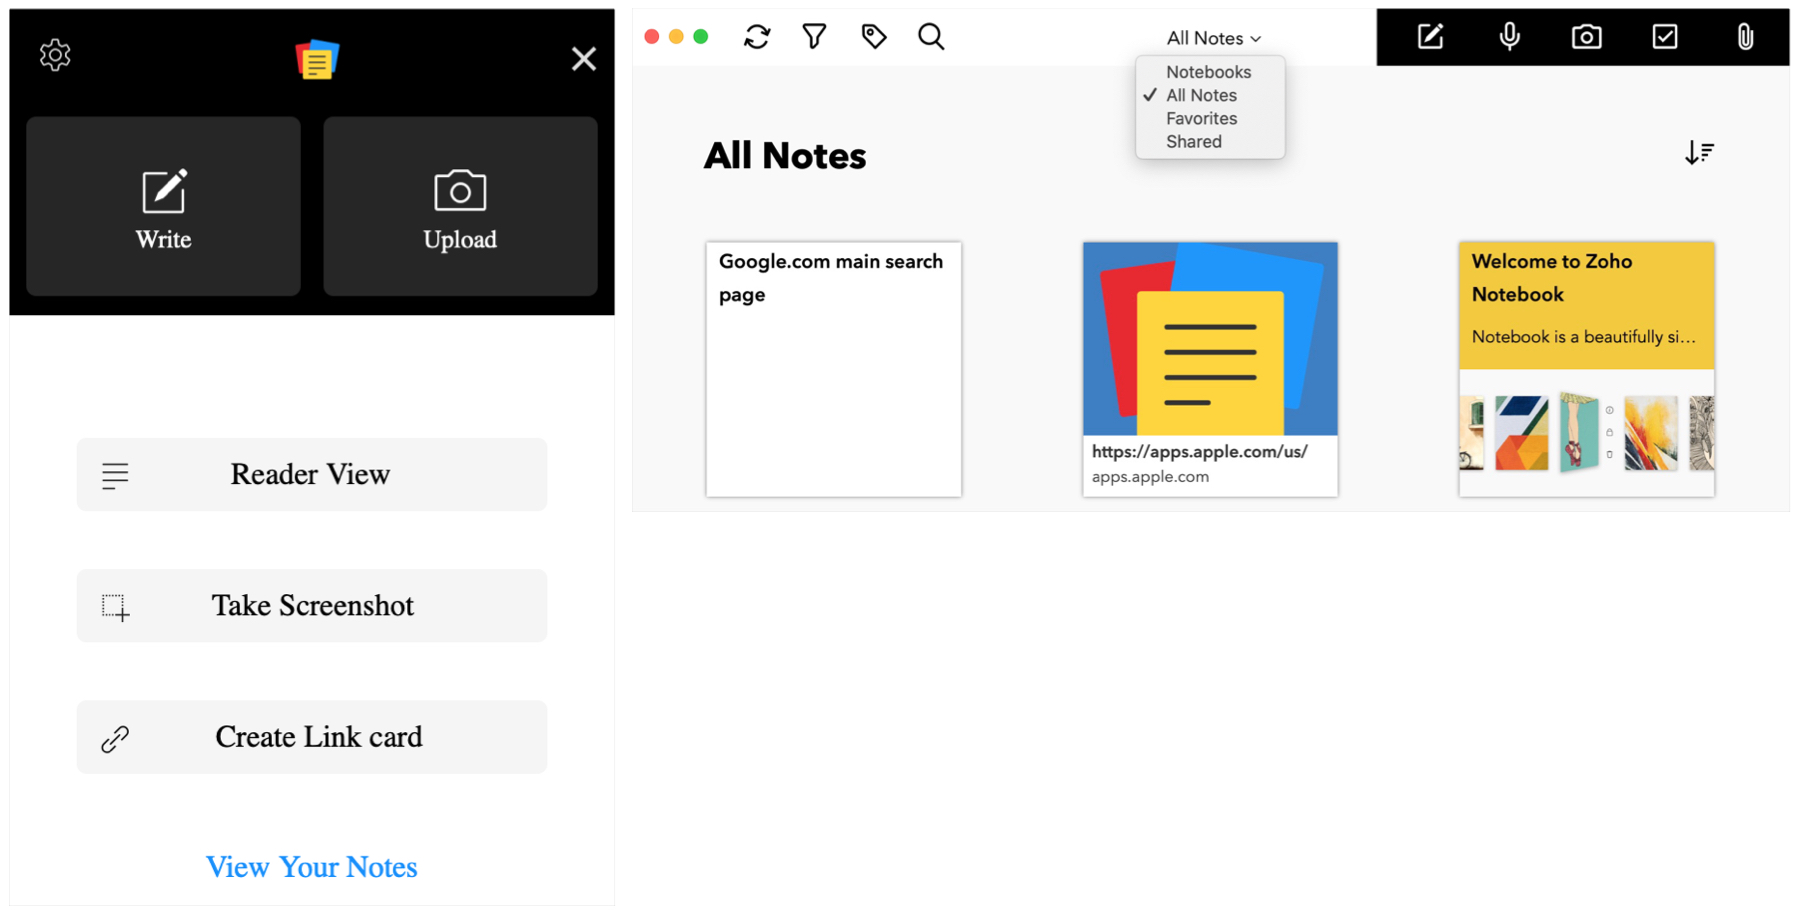 Notebook Zoho Safari Extension for Notes